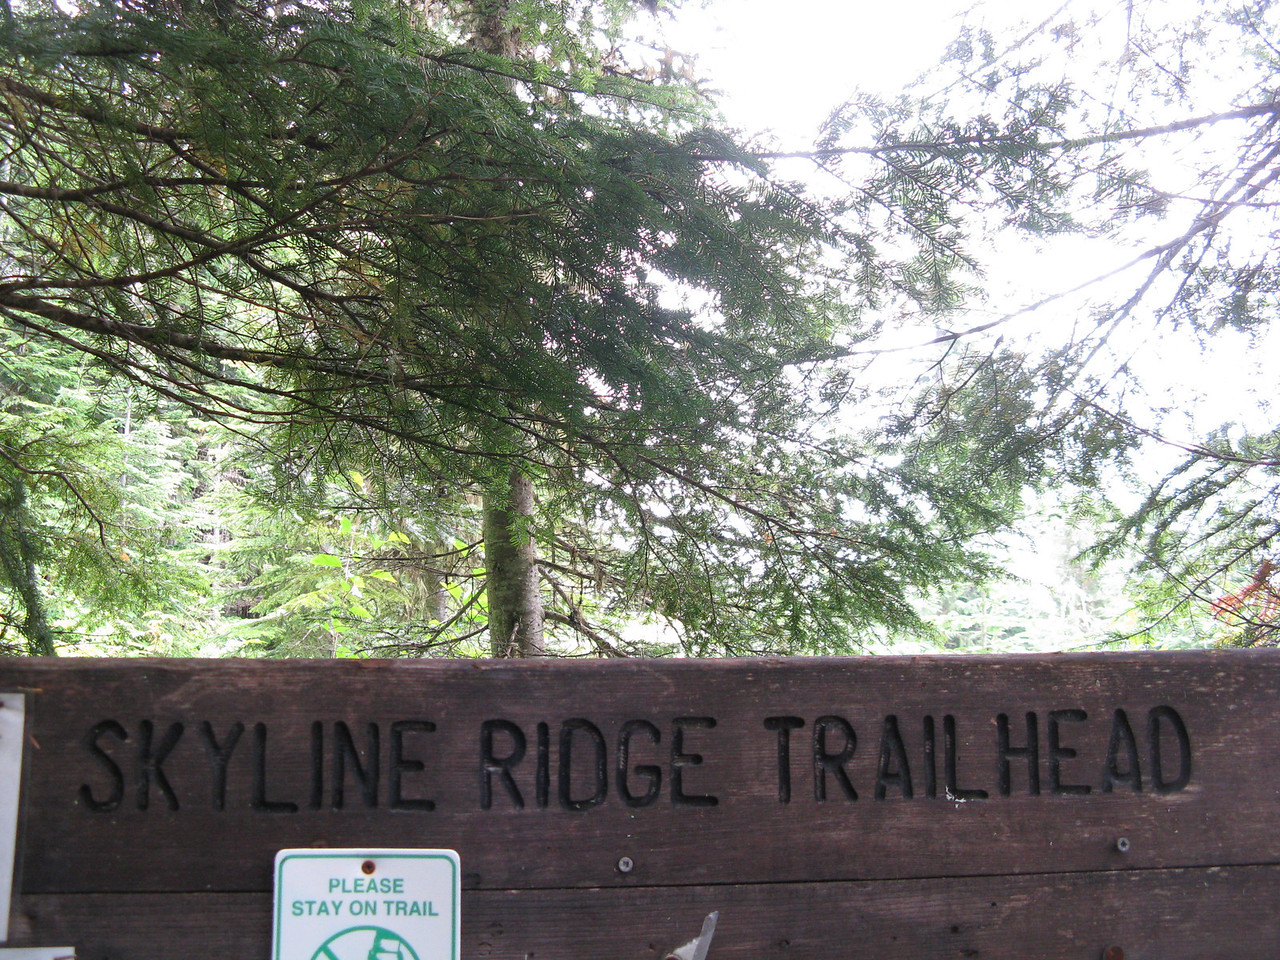 The Skyline RIdge Trailhead lies next to a rough Forest Service road that is 12.8 miles away from the Mount Baker Highway, state route 542.